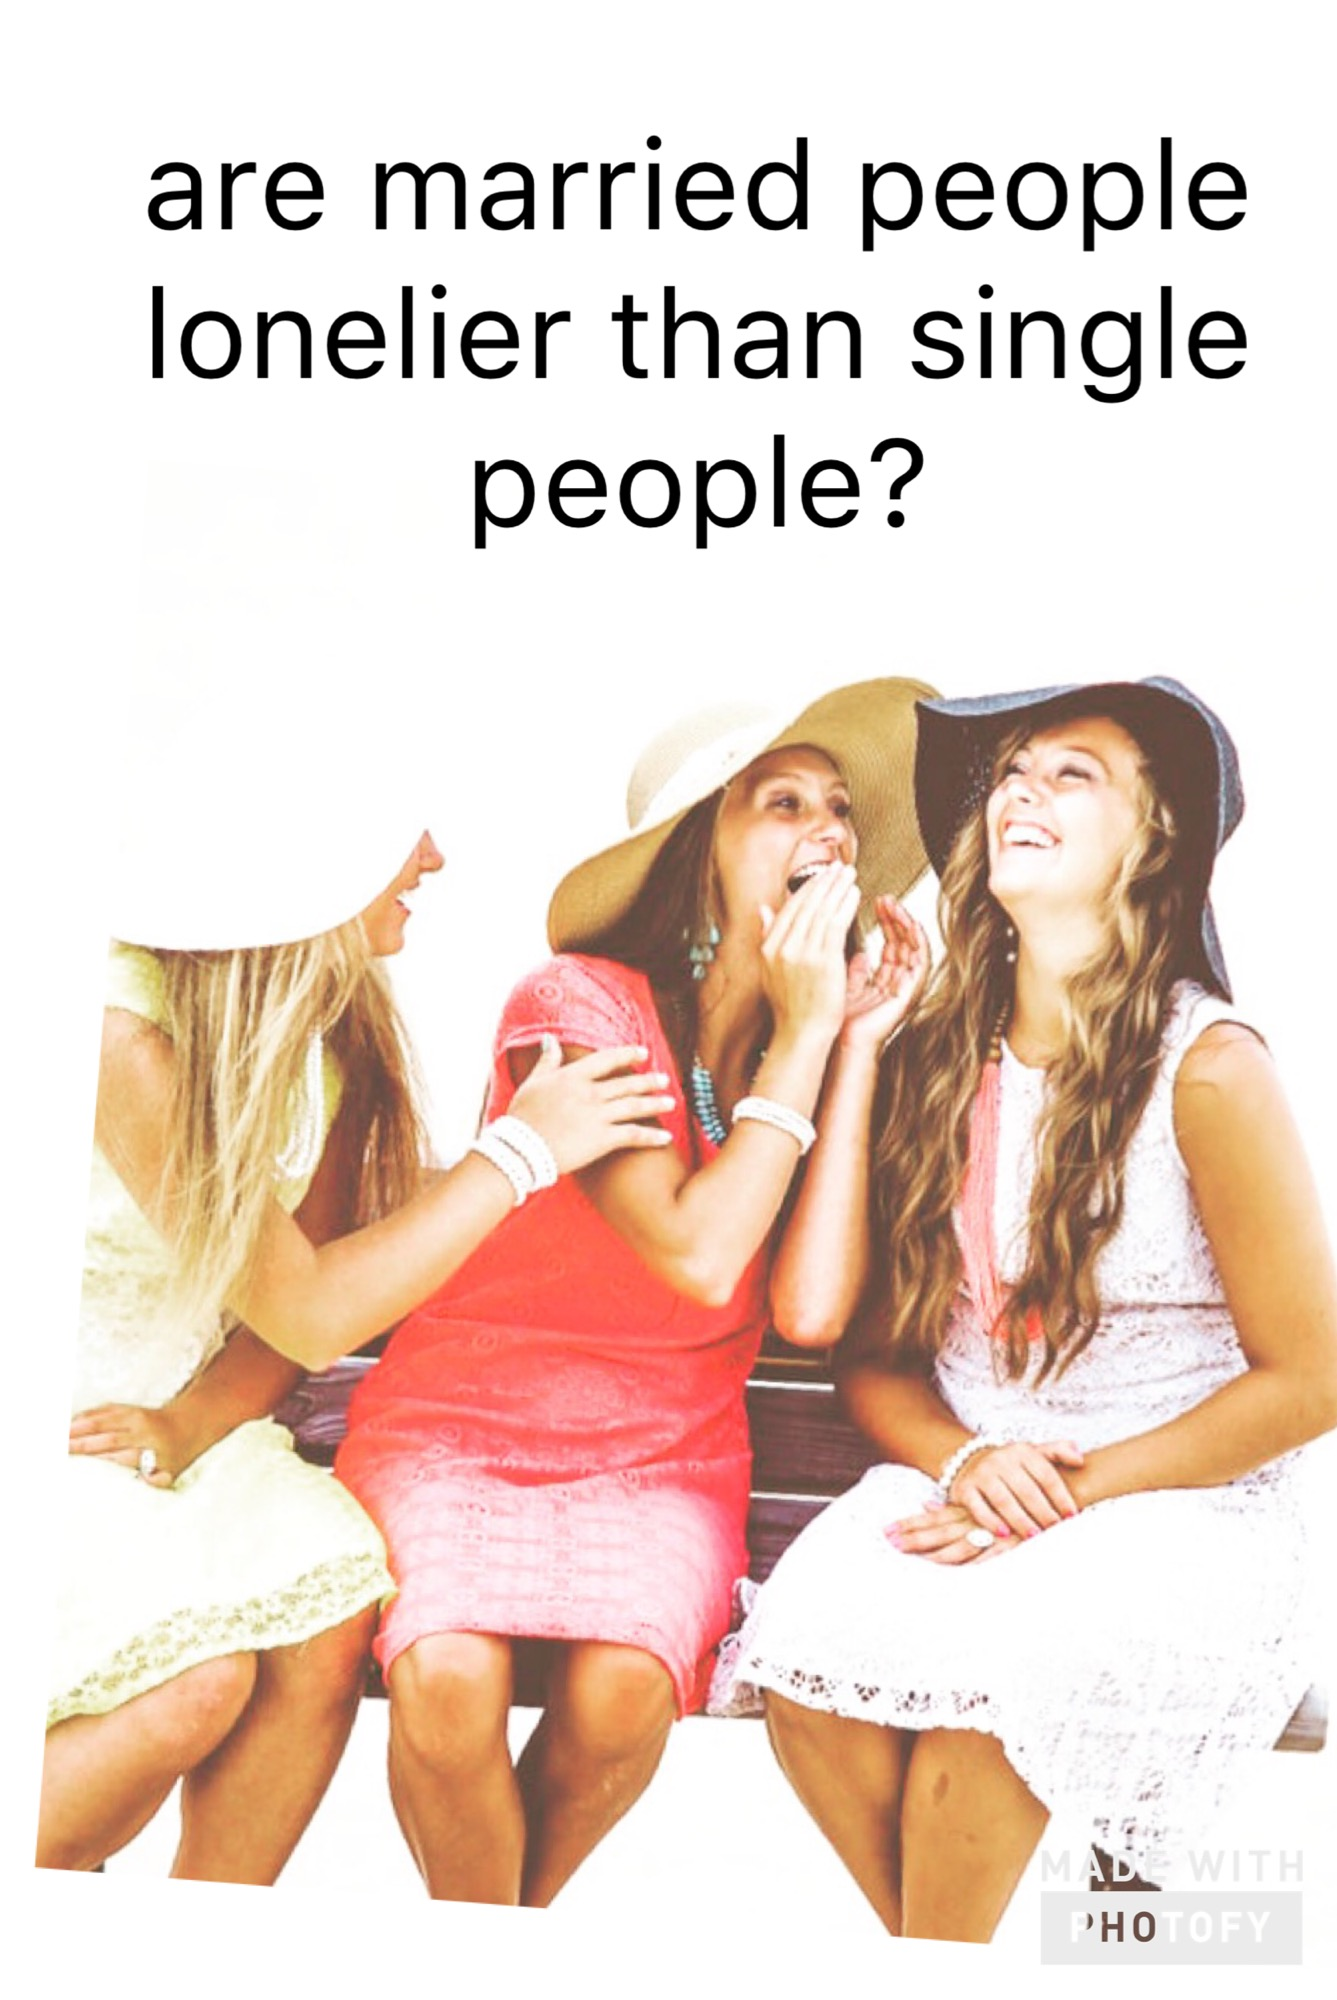 Are married people lonelier than single people